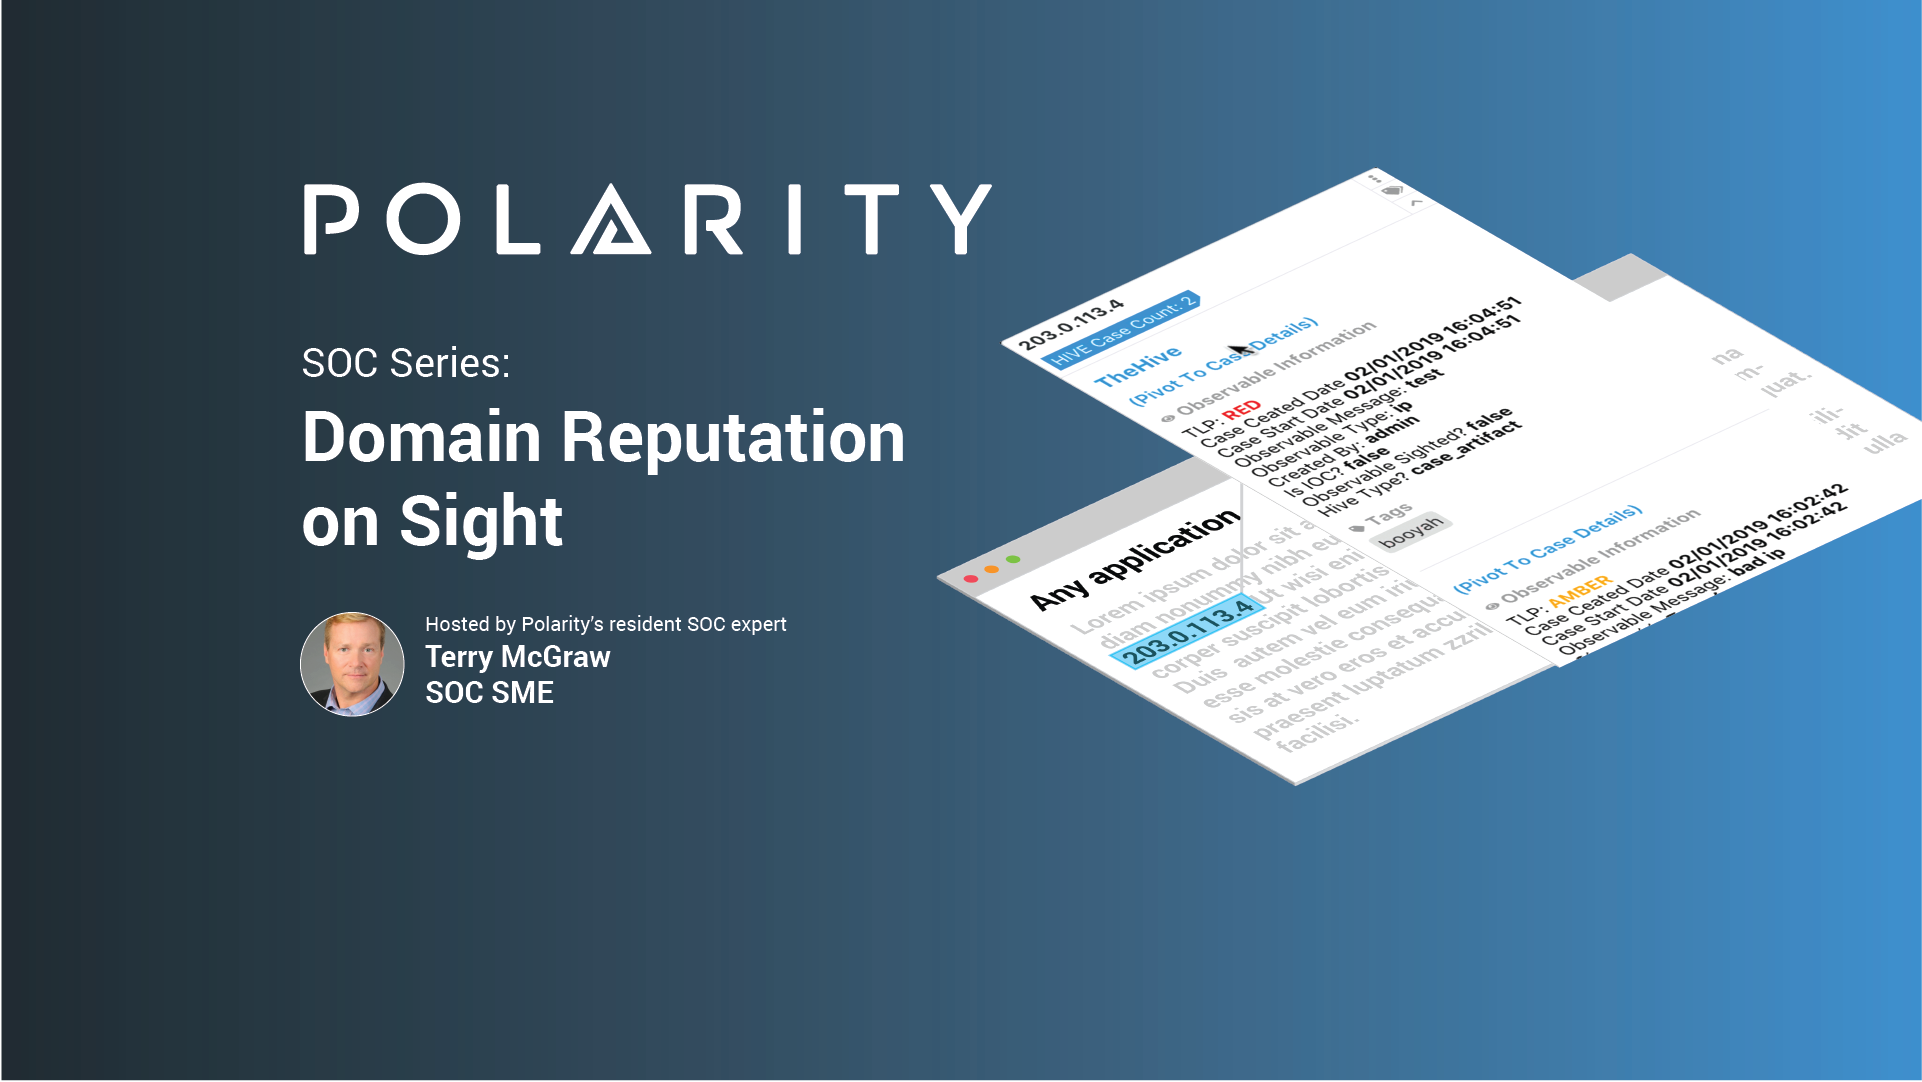 SOC Series: Domain Reputation on Sight cover image